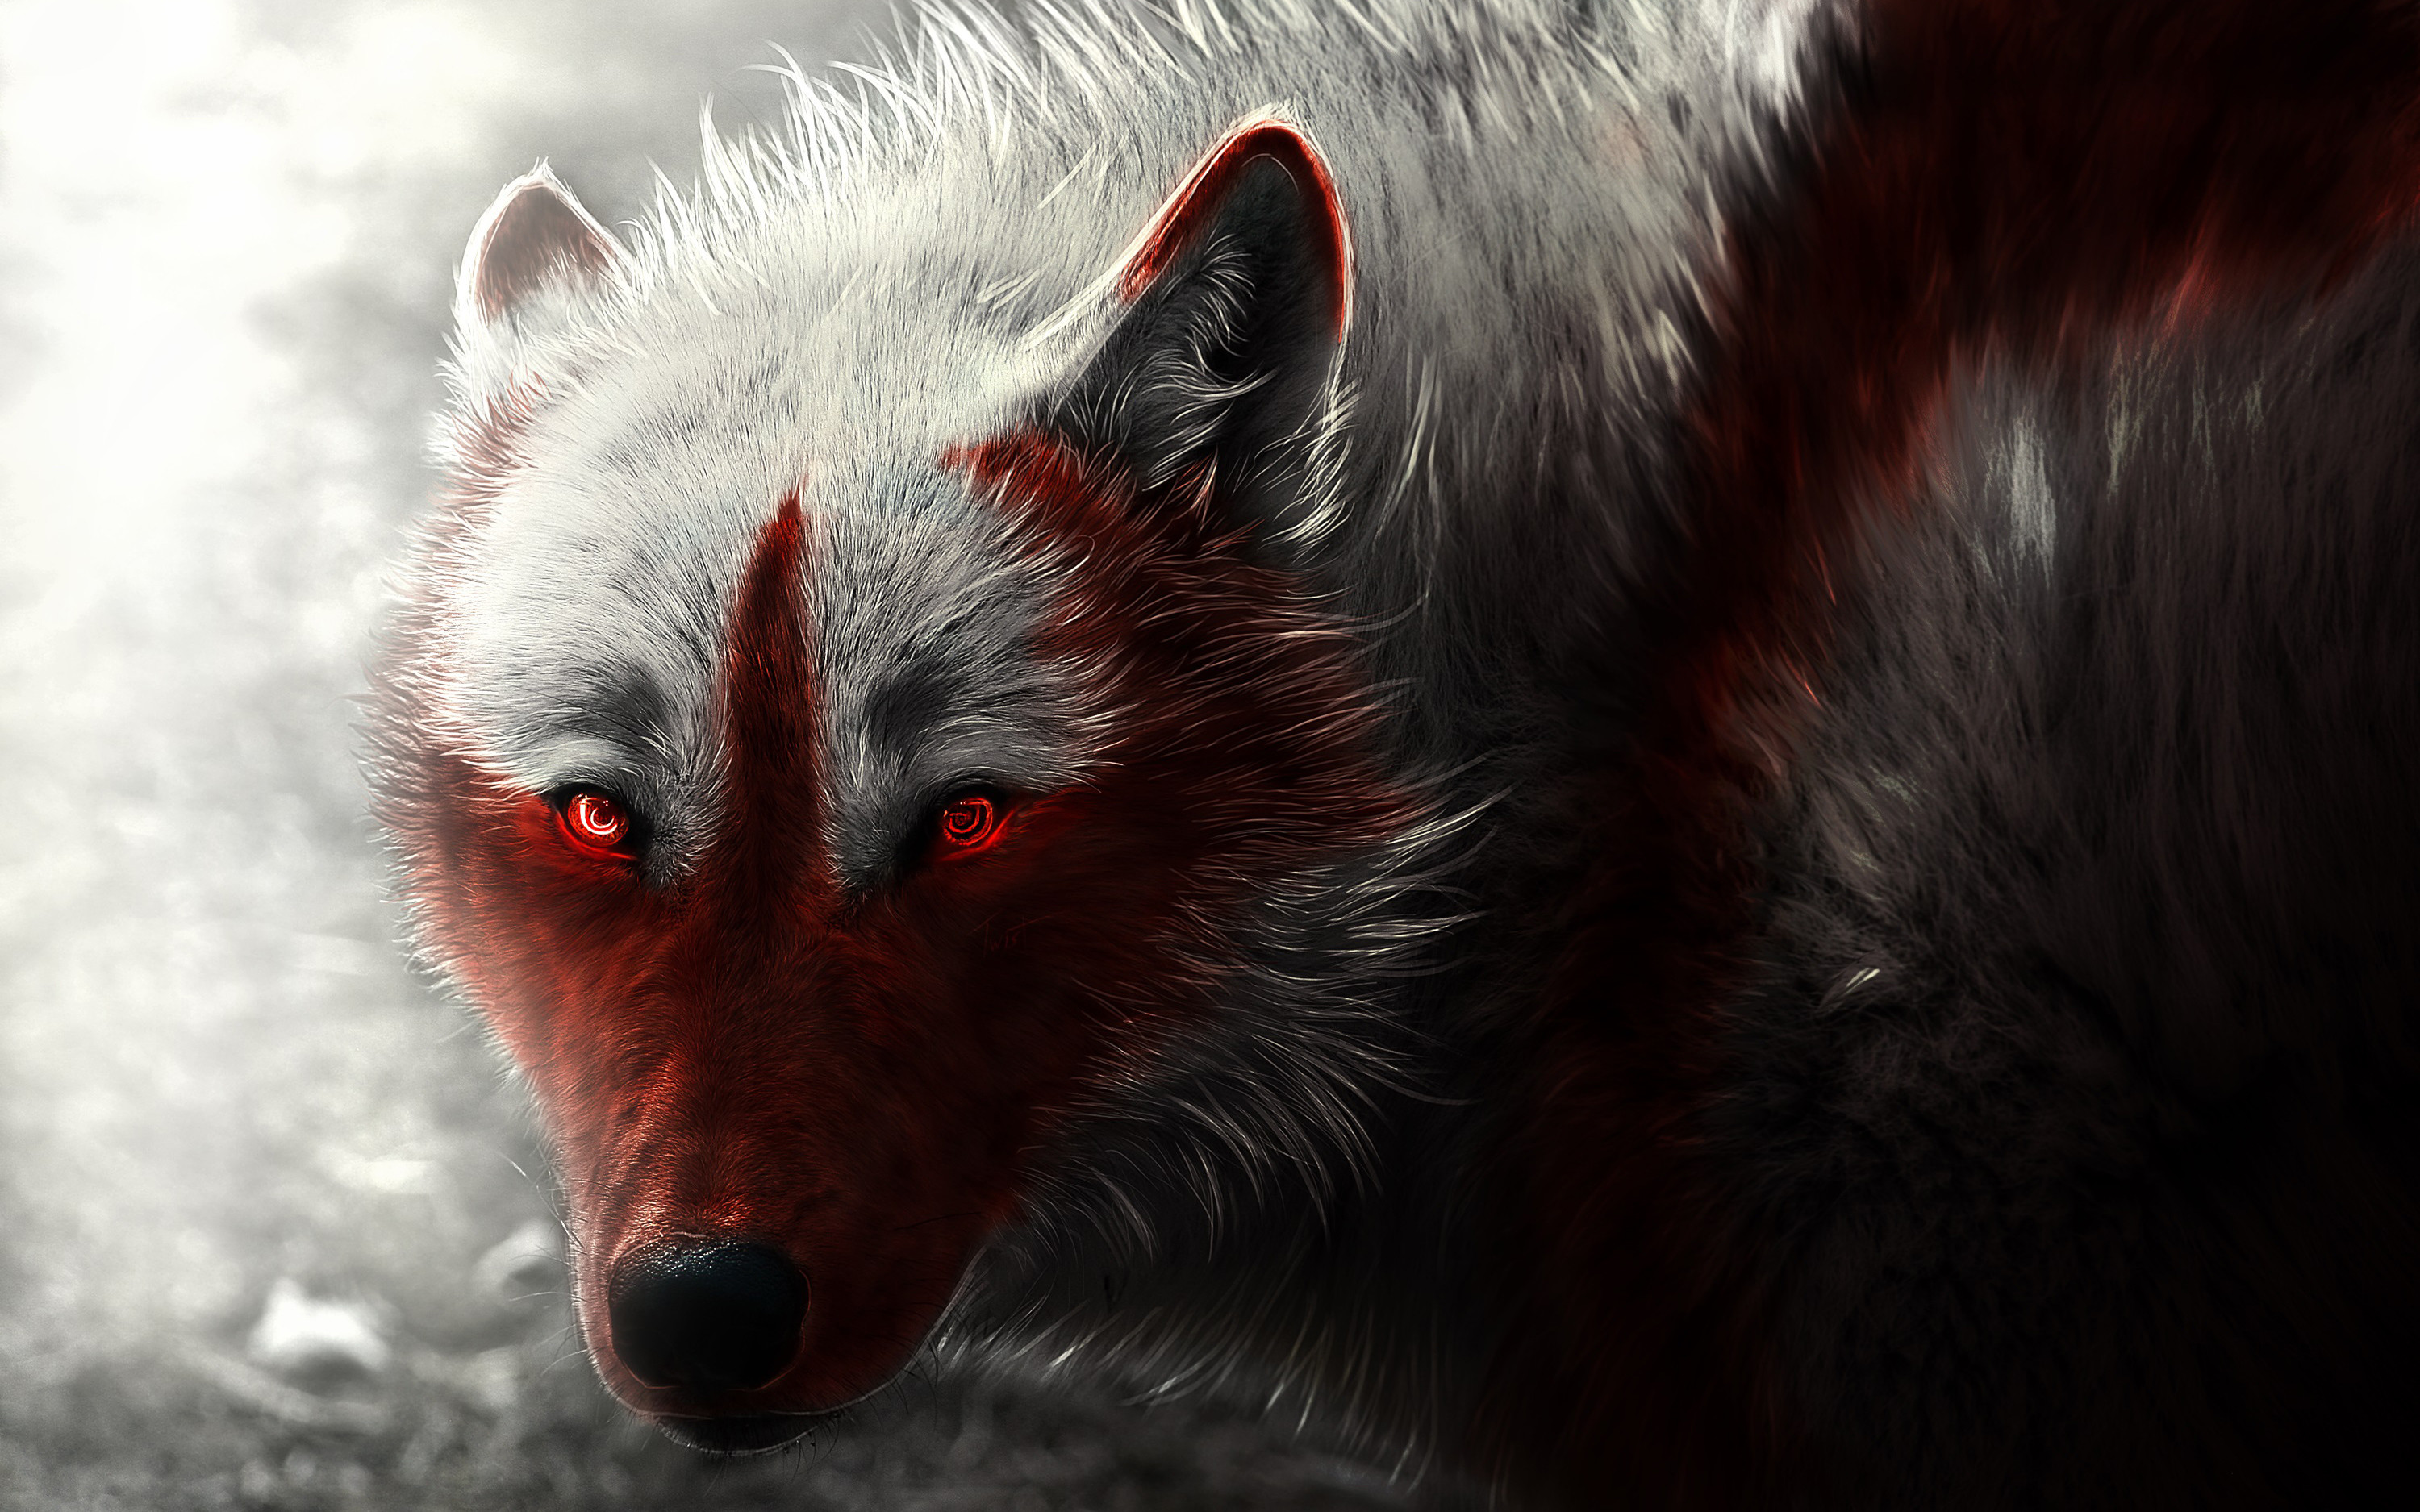 Scary Animal Wallpapers: Neon Wolf Wallpaper (54+ Images